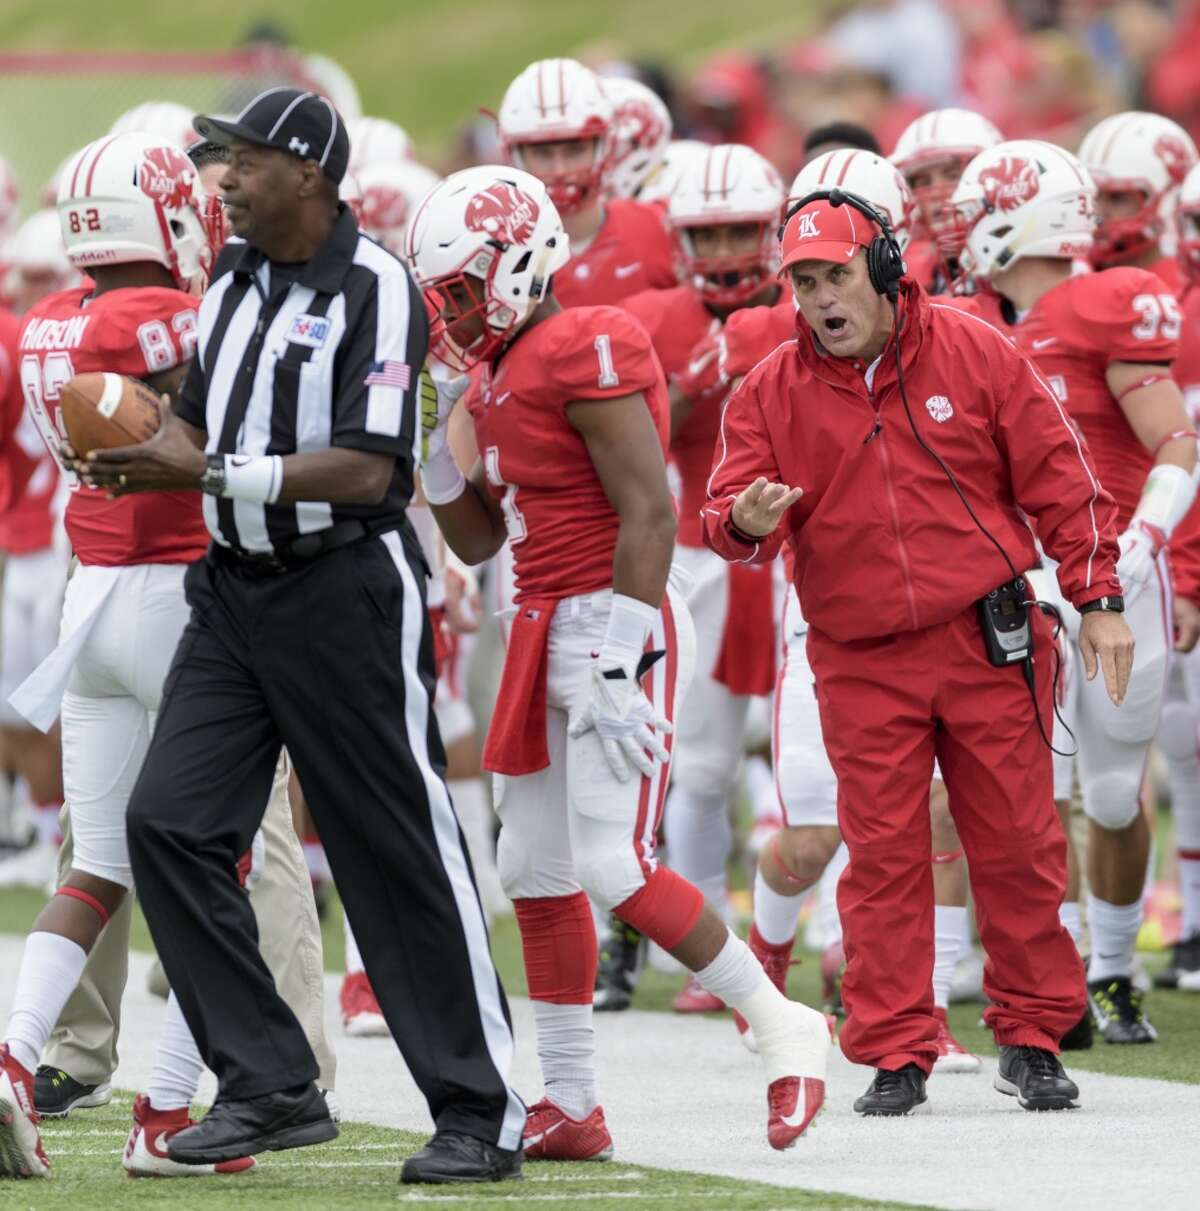 Katy Tigers Head Coach, Gary Rogers shouts instructions to his offense in the first half against the Cinco Ranch Cougars in a high school football game on Saturday, November 7, 2015 at Rhodes Stadium.